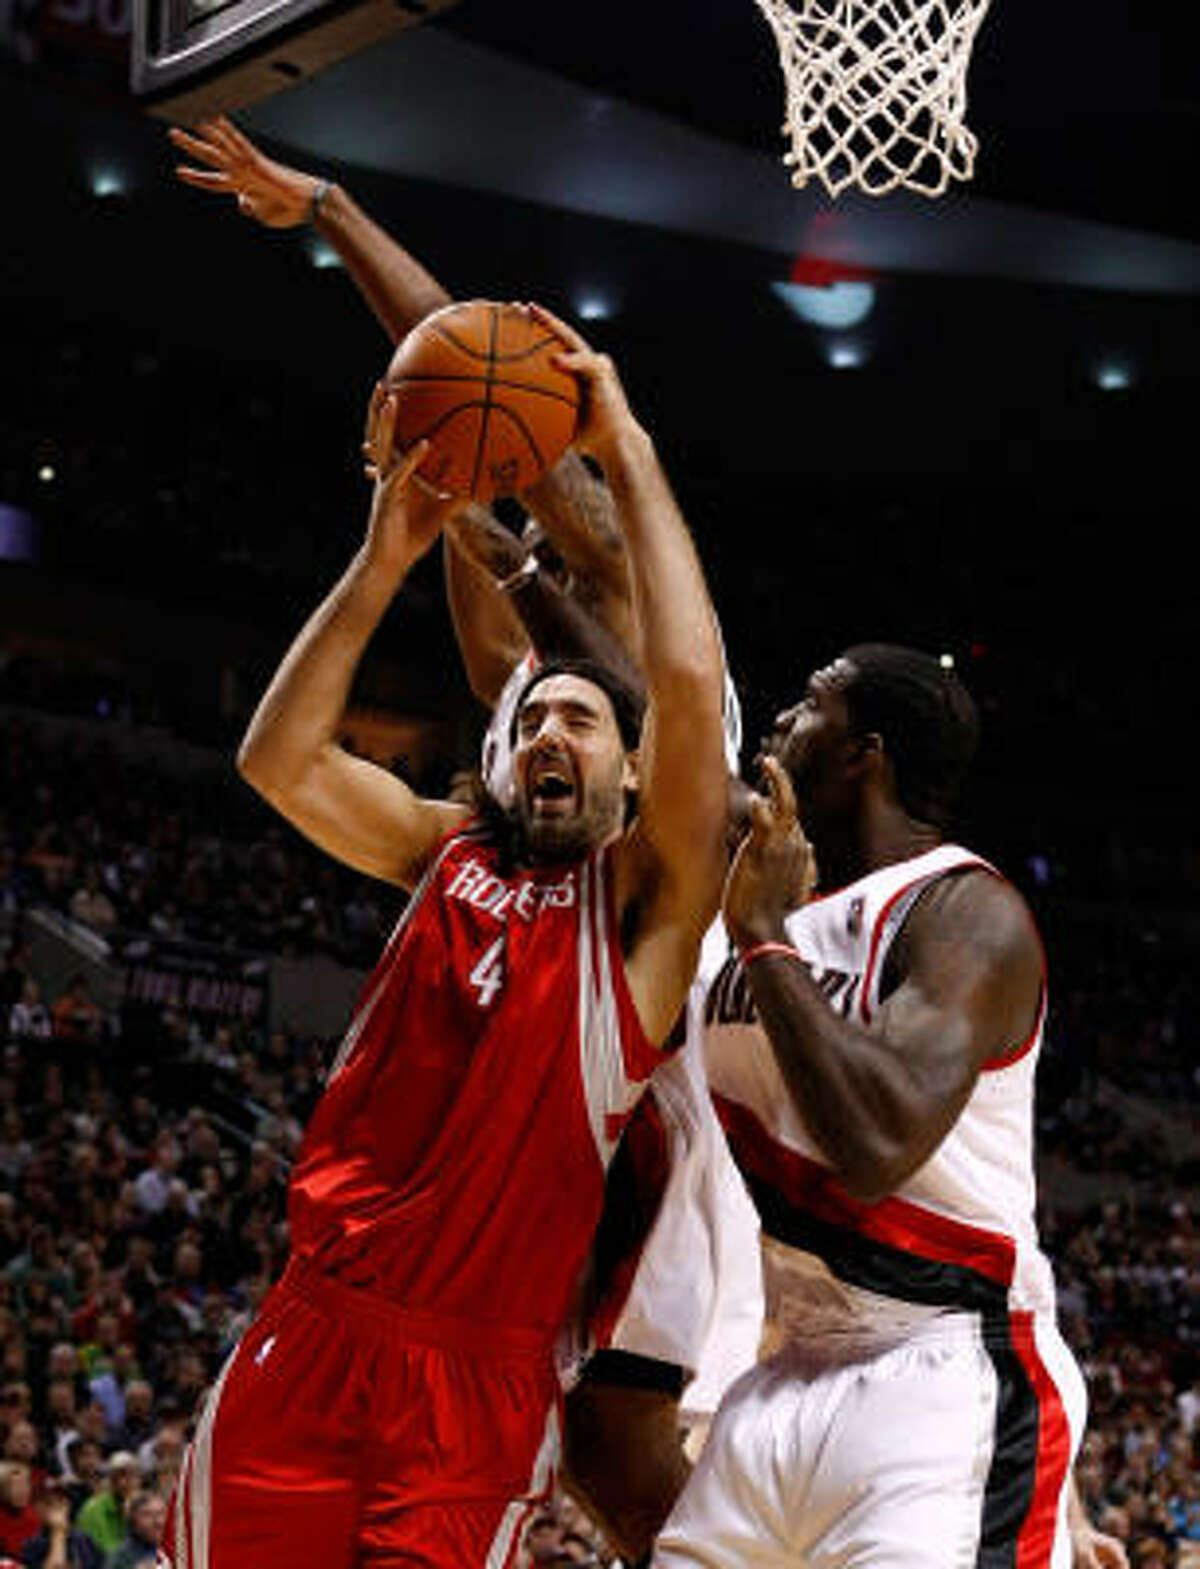 Rockets forward Luis Scola (4), shown against Portland, scored 21 points in Houston's 108-107 win over the Warriors on Wednesday night.